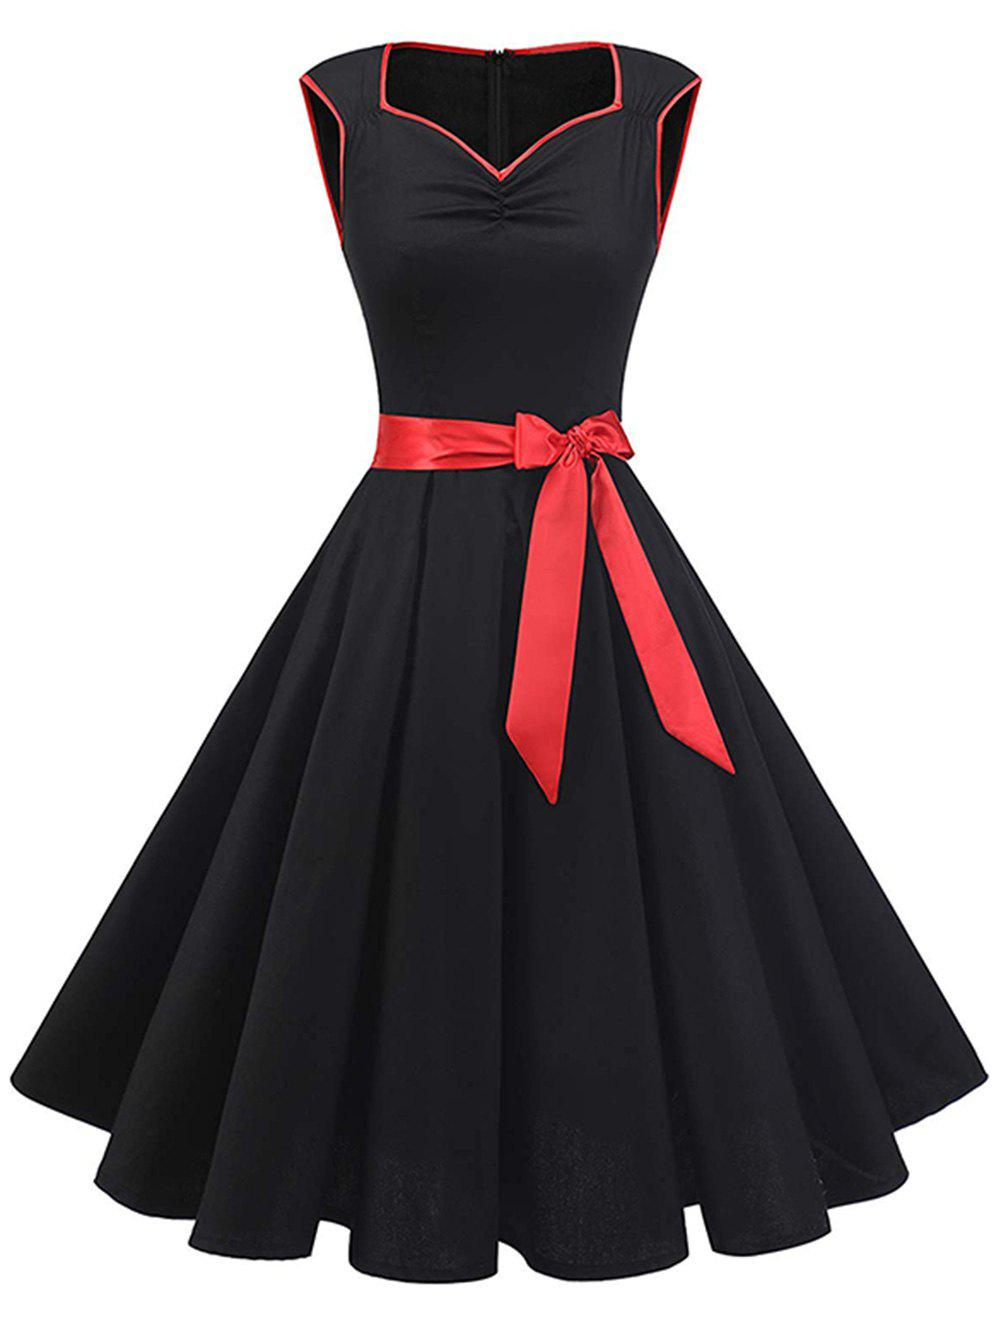 Sweetheart Contrast Piping Belted Rockabilly Style Dress - BLACK 2XL